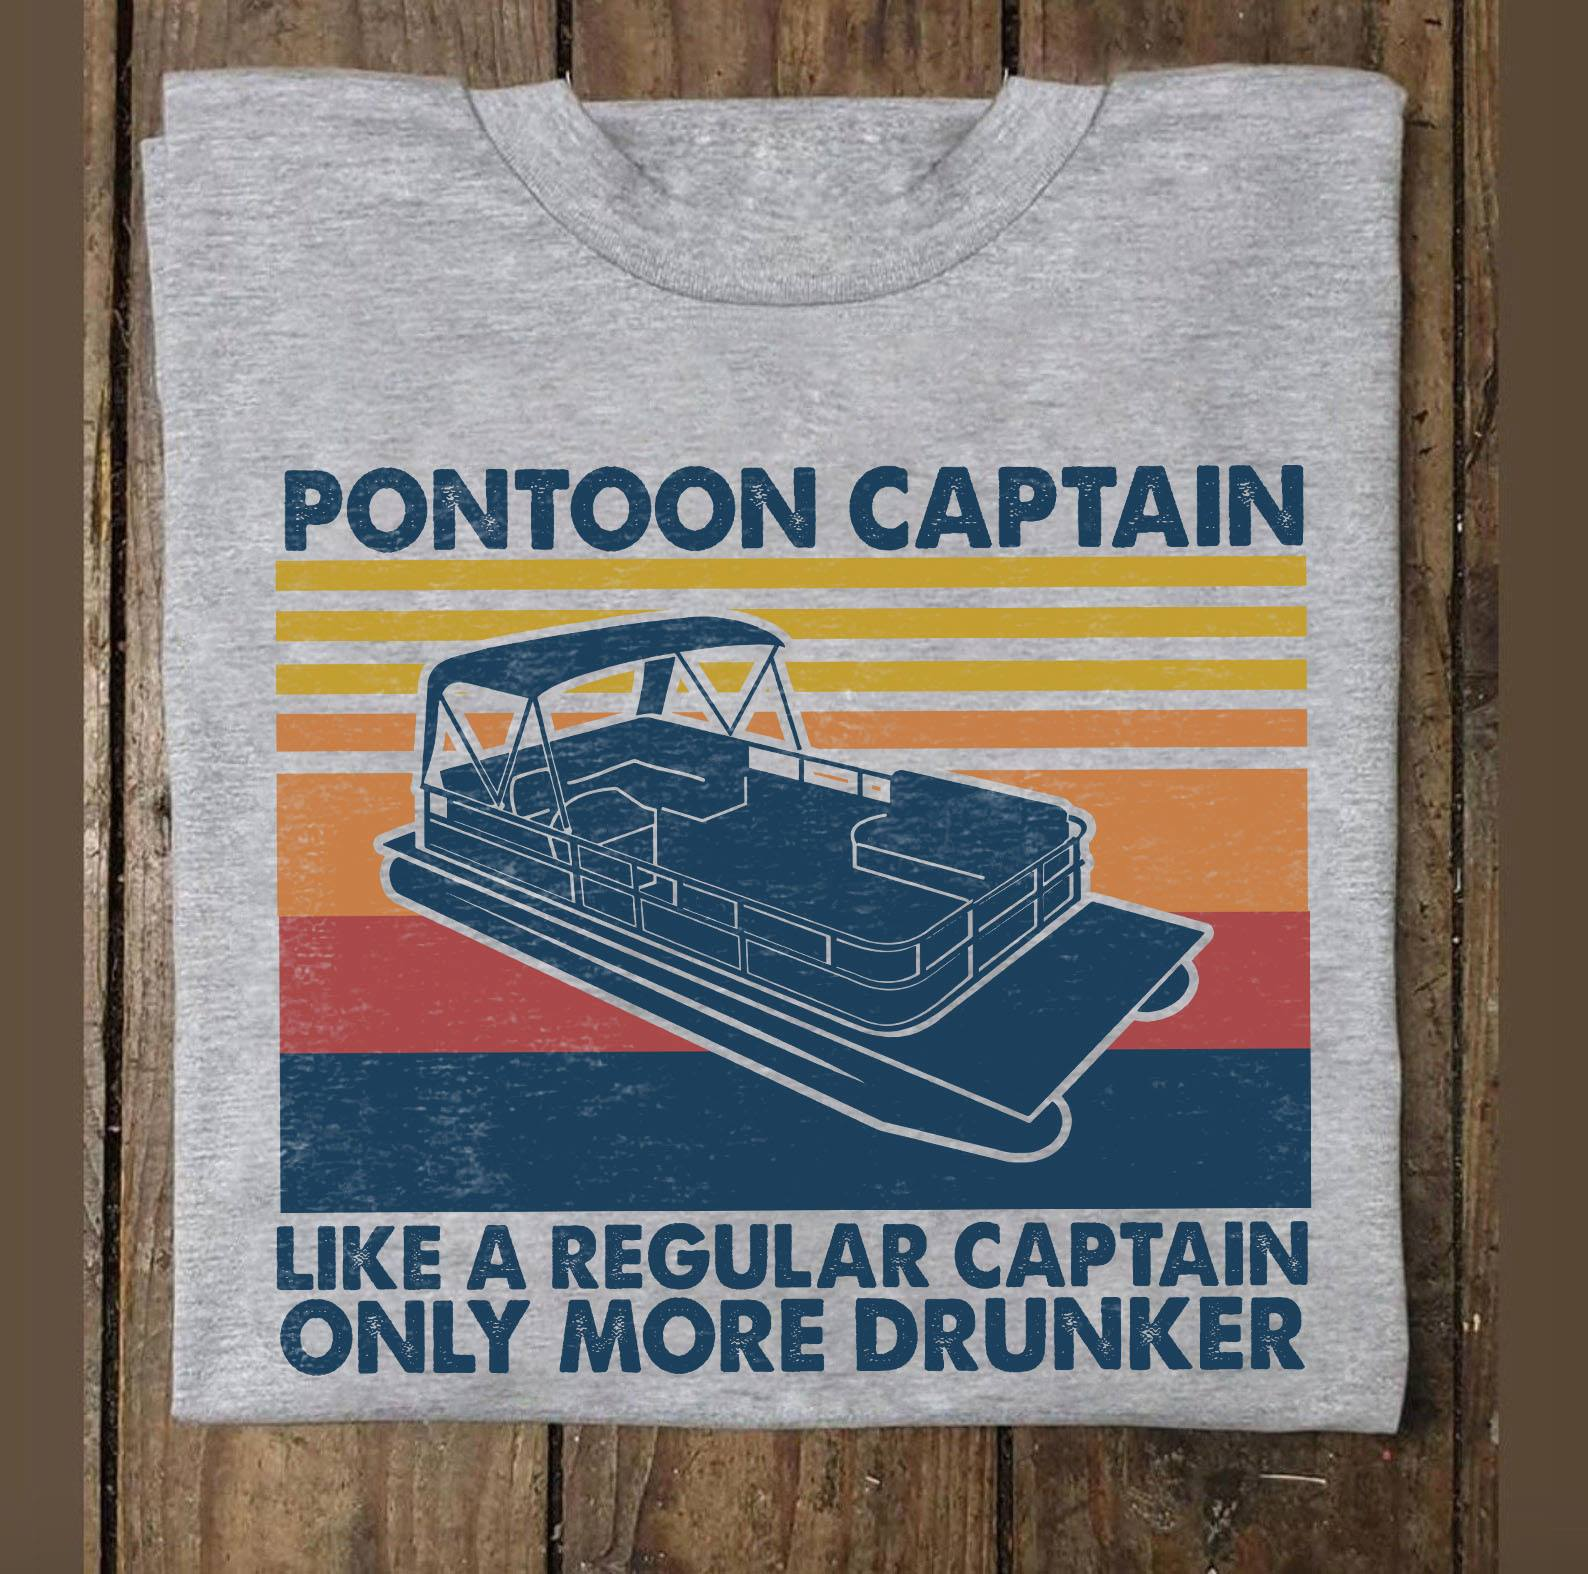 Pontoon Captain Shirt Like A Regular Captain Only More Drunker